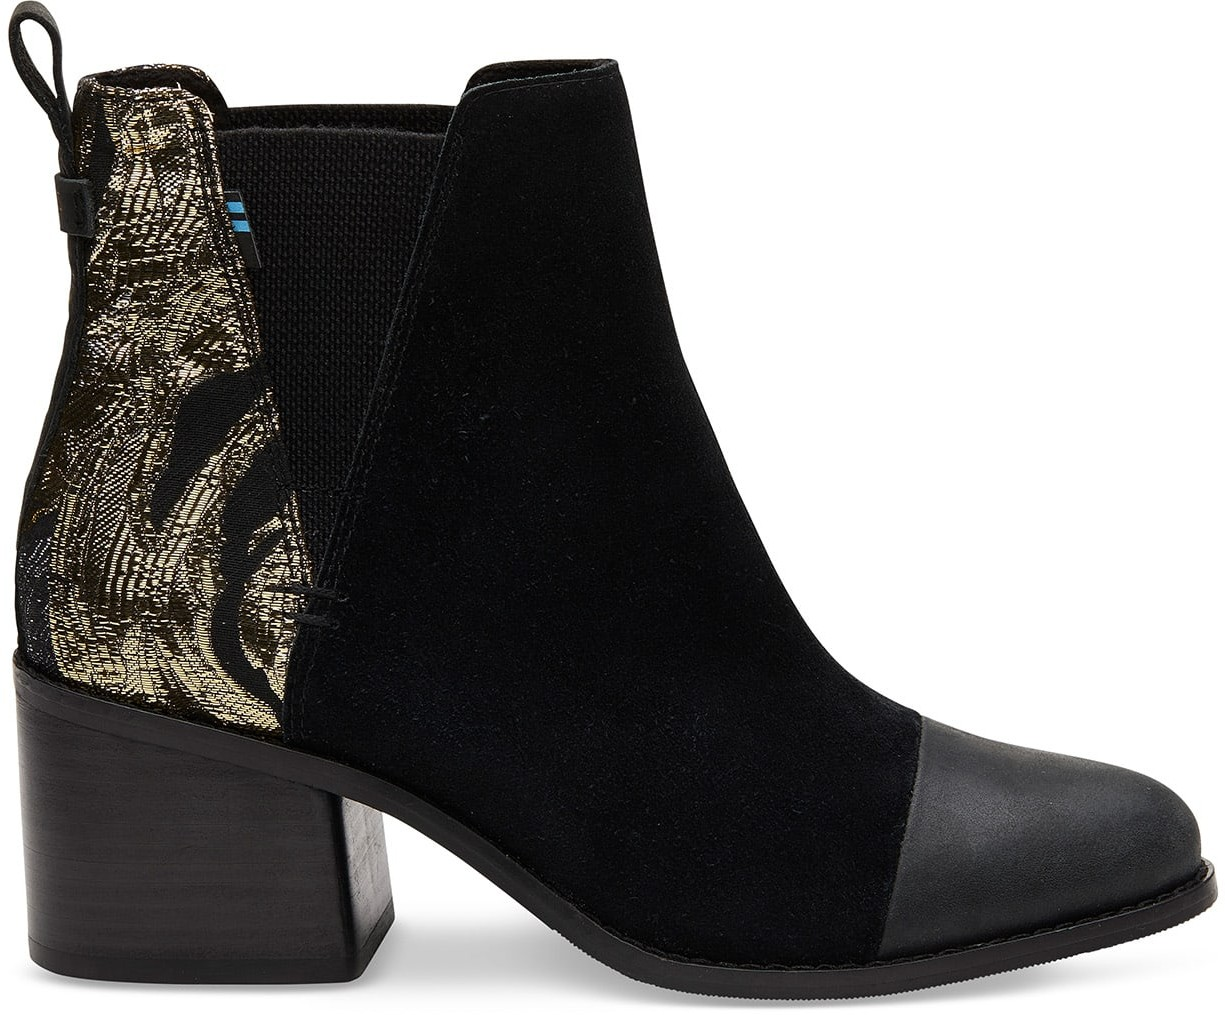 Toms Black Suede And Floral Metallic Jaquard Mix Women's Esme - Size UK4.5 / US 6.5 Boot